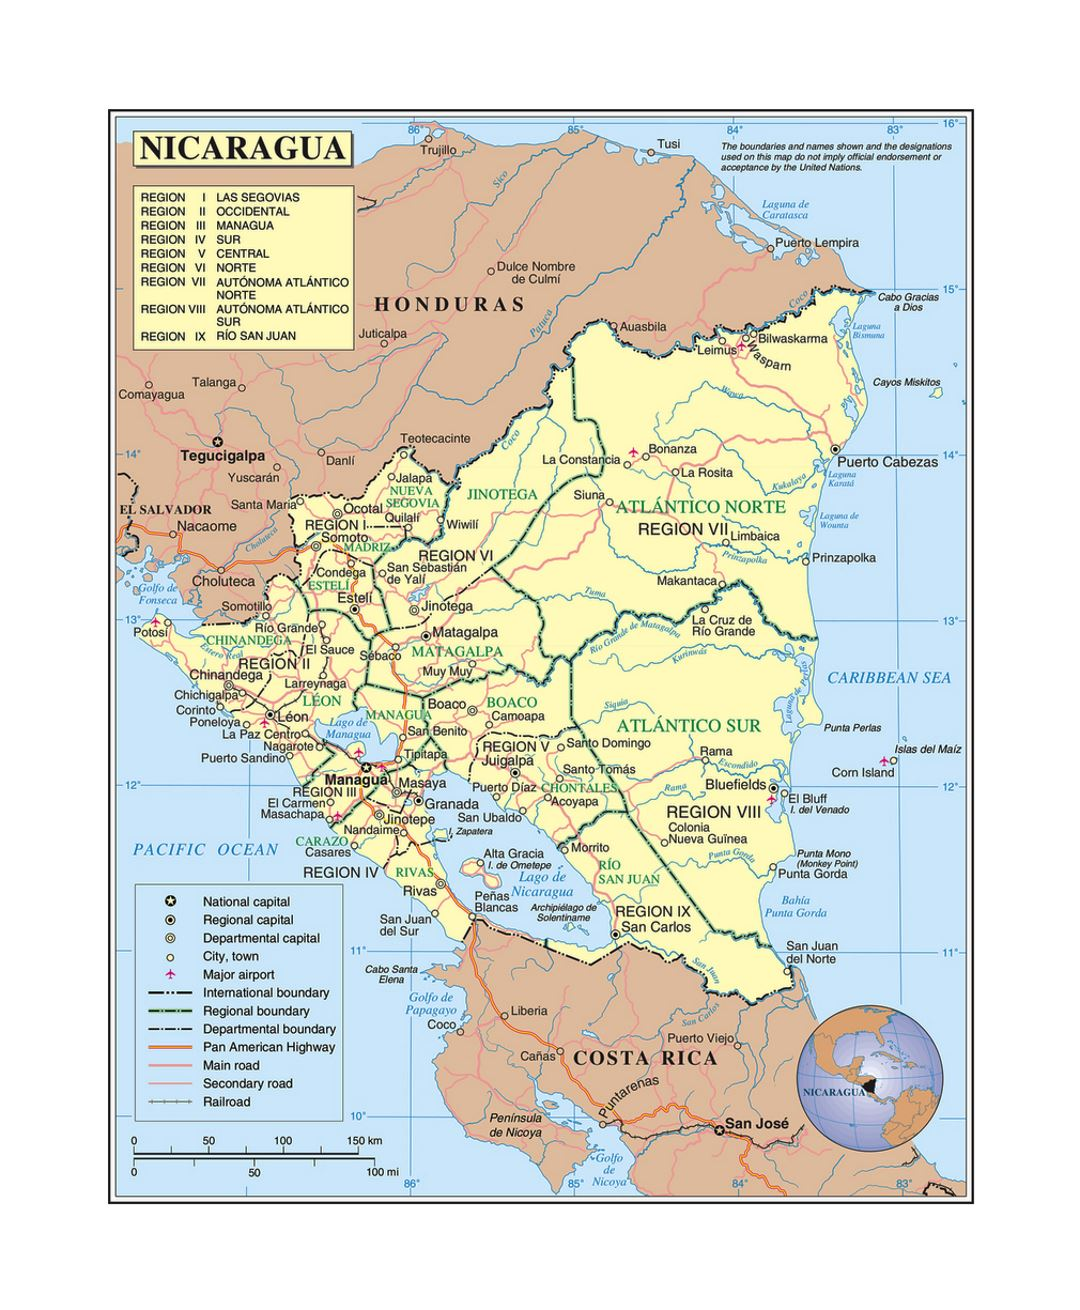 Detailed political and administrative map of Nicaragua with roads, railroads, cities and airports